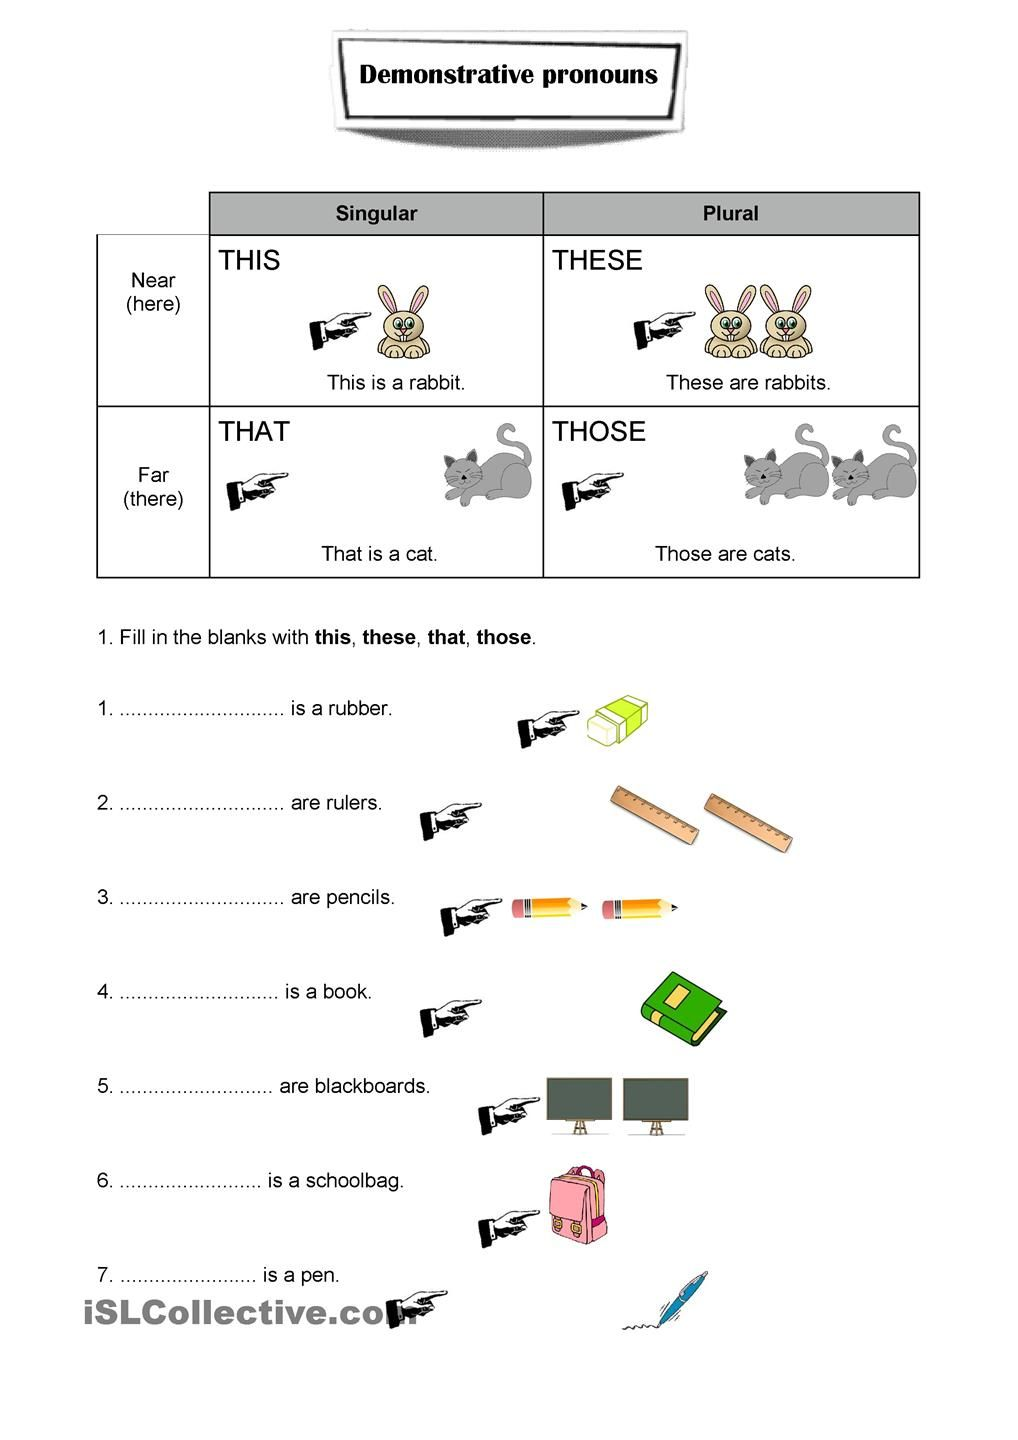 Demonstrative pronouns worksheet | Lourdes | Pinterest